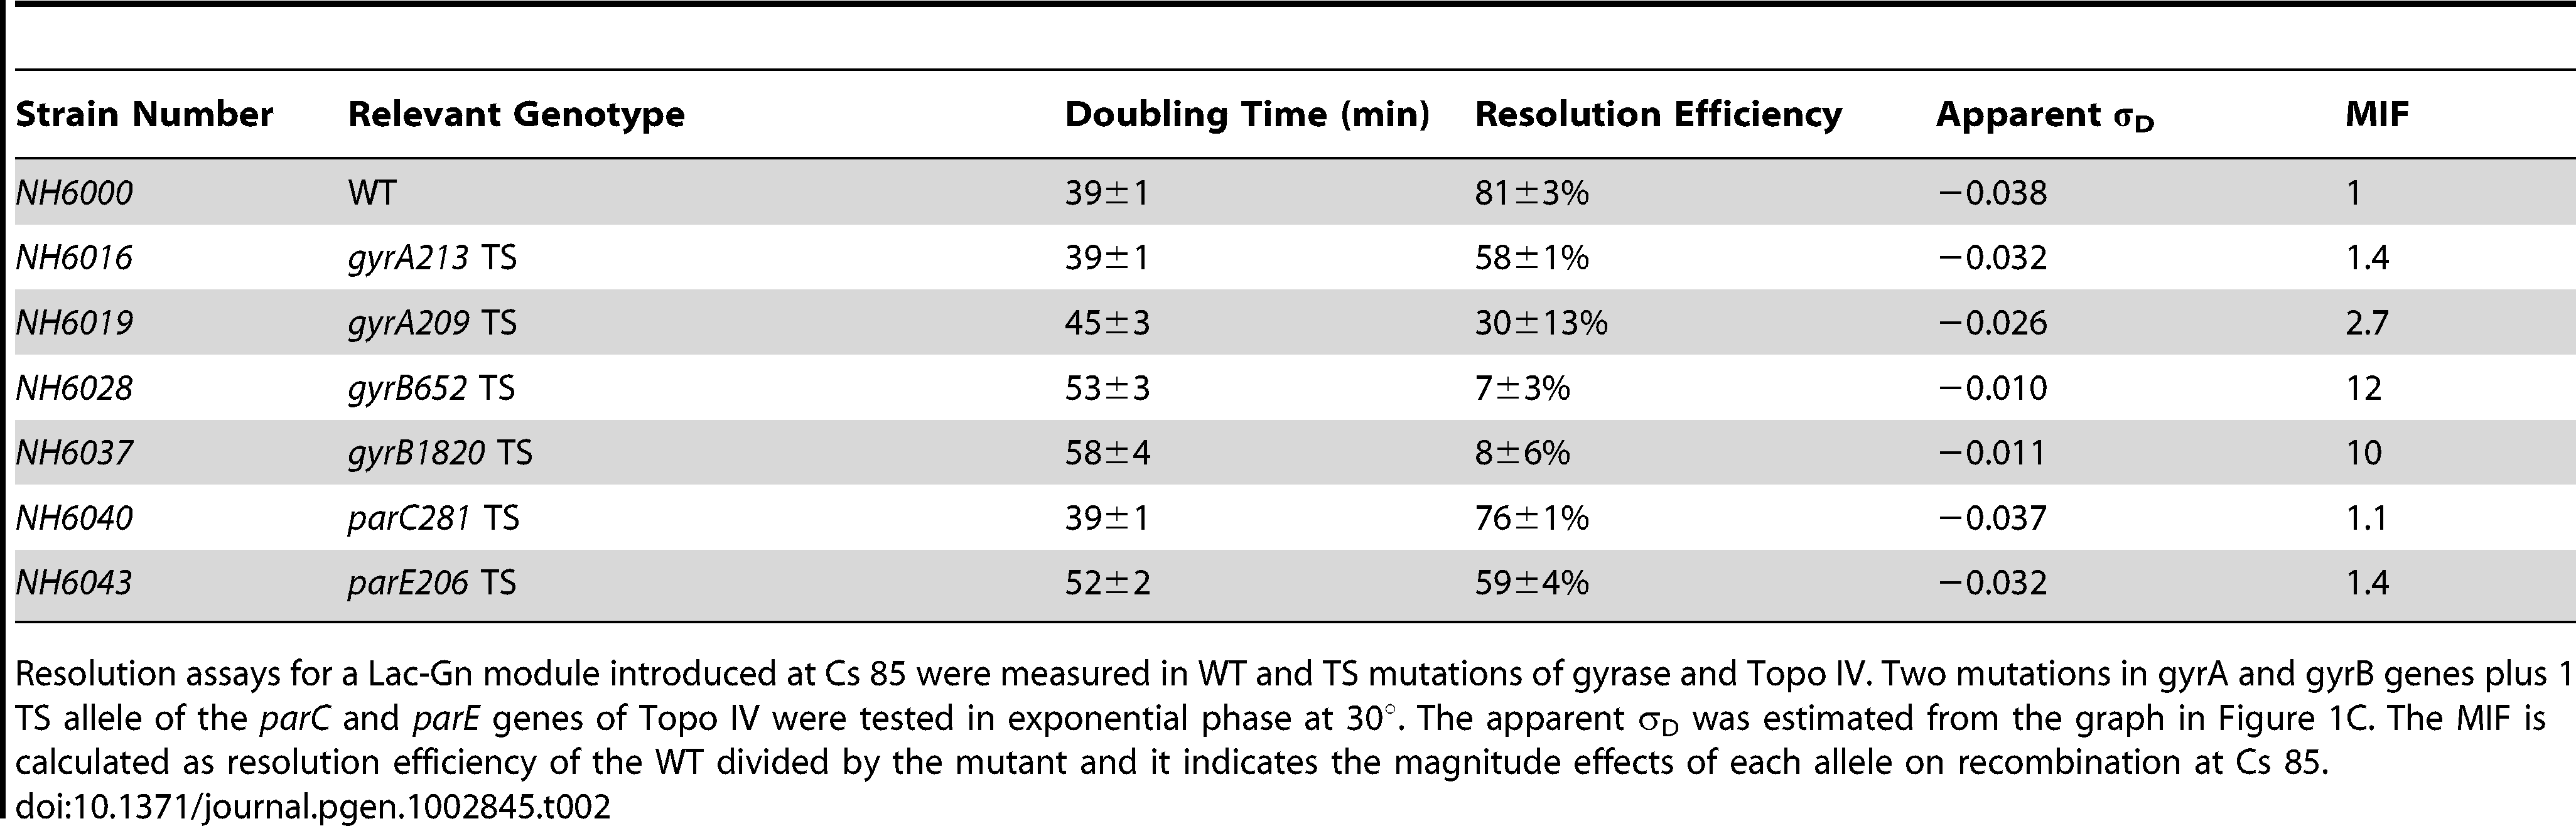 TS alleles of gyrase and Topo IV decrease diffusible chromosome supercoiling at Cs 85.